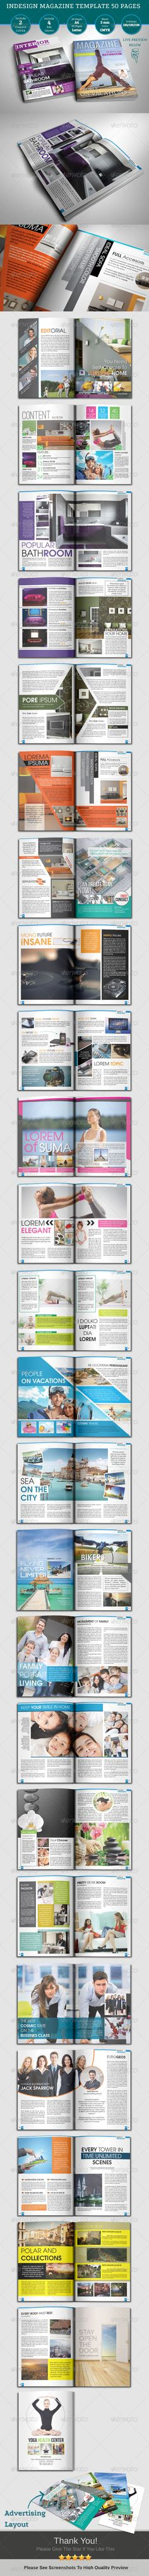 Indesign Magazine Template InDesign INDD. Download here : http://graphicriver.net/item/indesign-magazine-templates-50-pages-/4650812?s_rank=1791&ref=yinkira